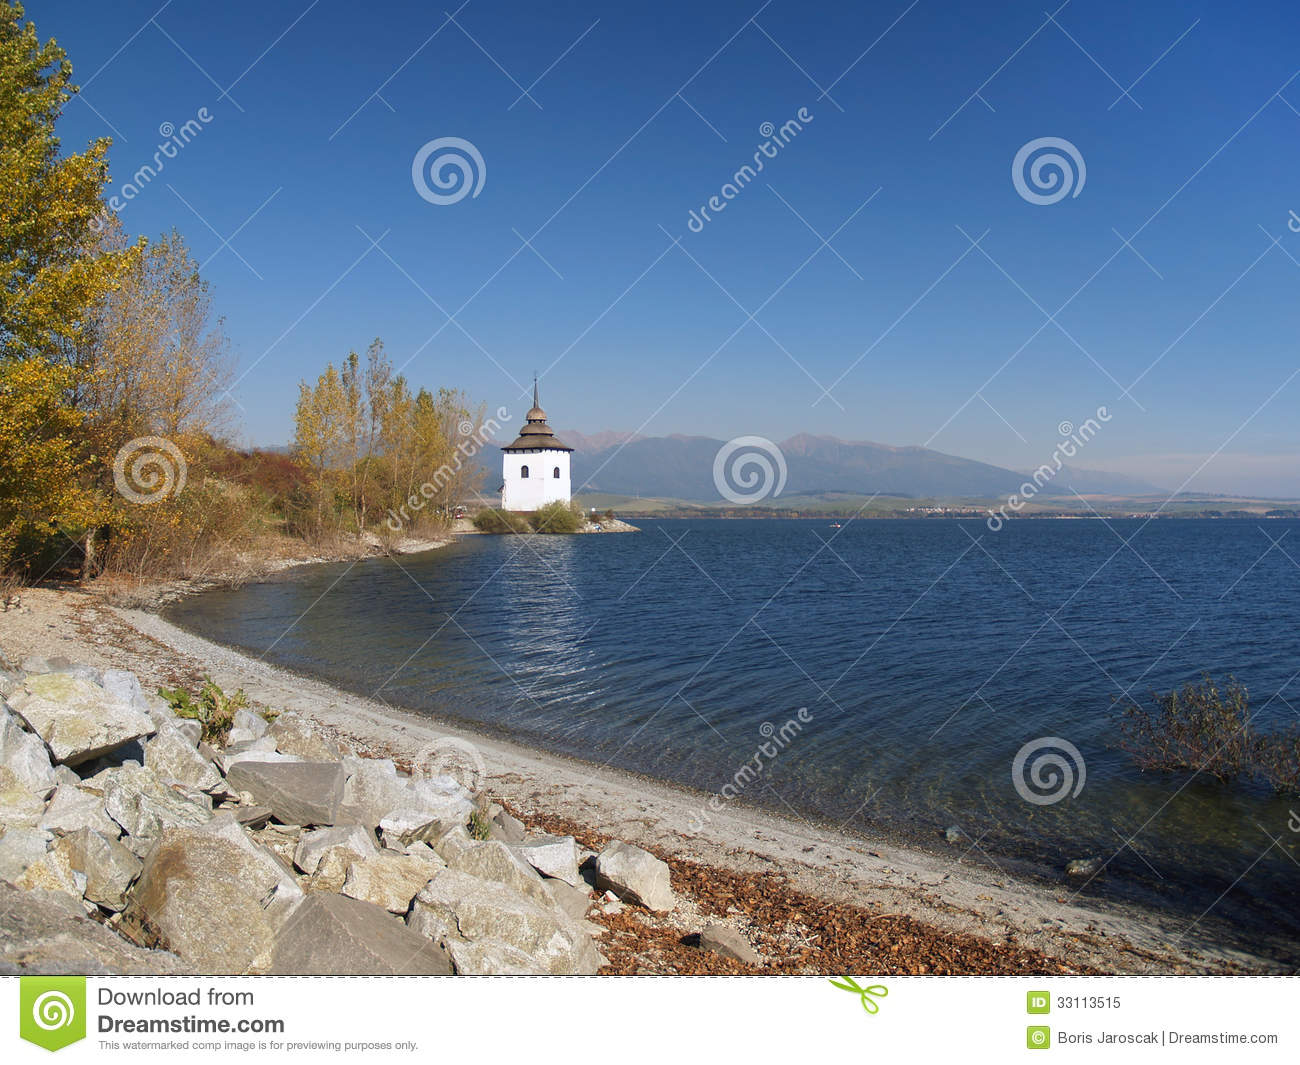 Shore, tower and Rohace mountains